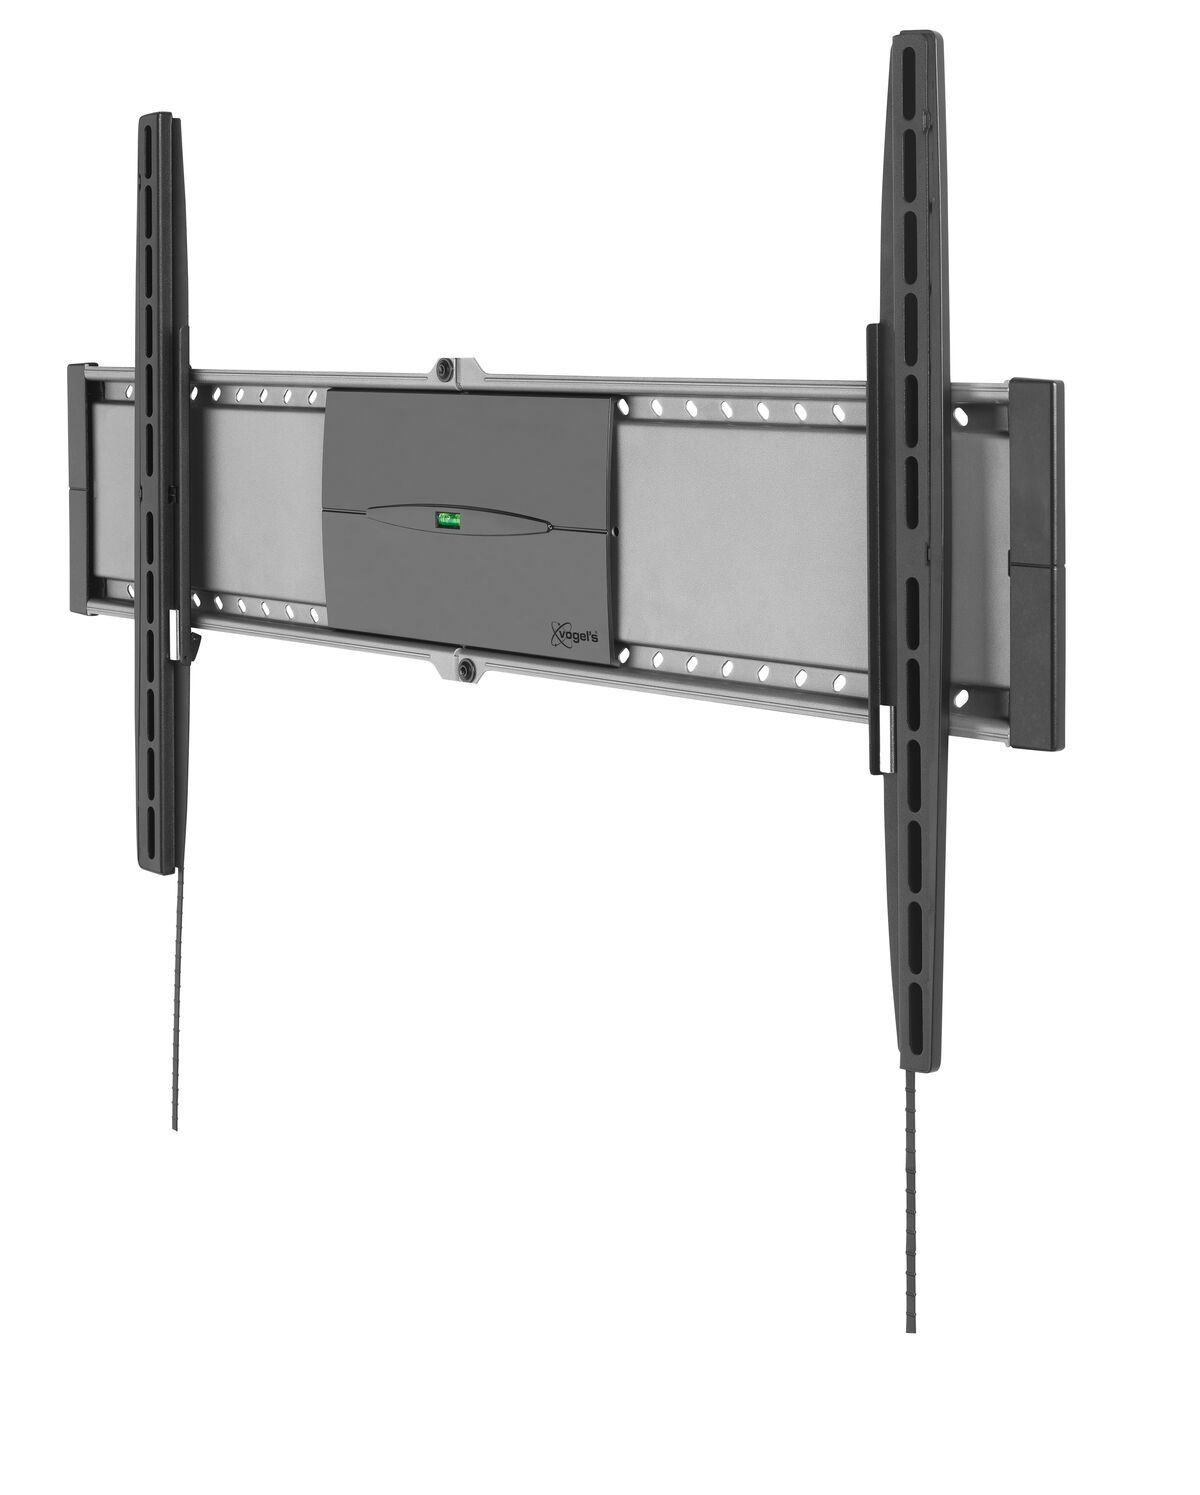 Vogel's EFW 8305 Fixed TV Wall Mount - Suitable for 40 up to 80 inch TVs up to 70 kg - Product